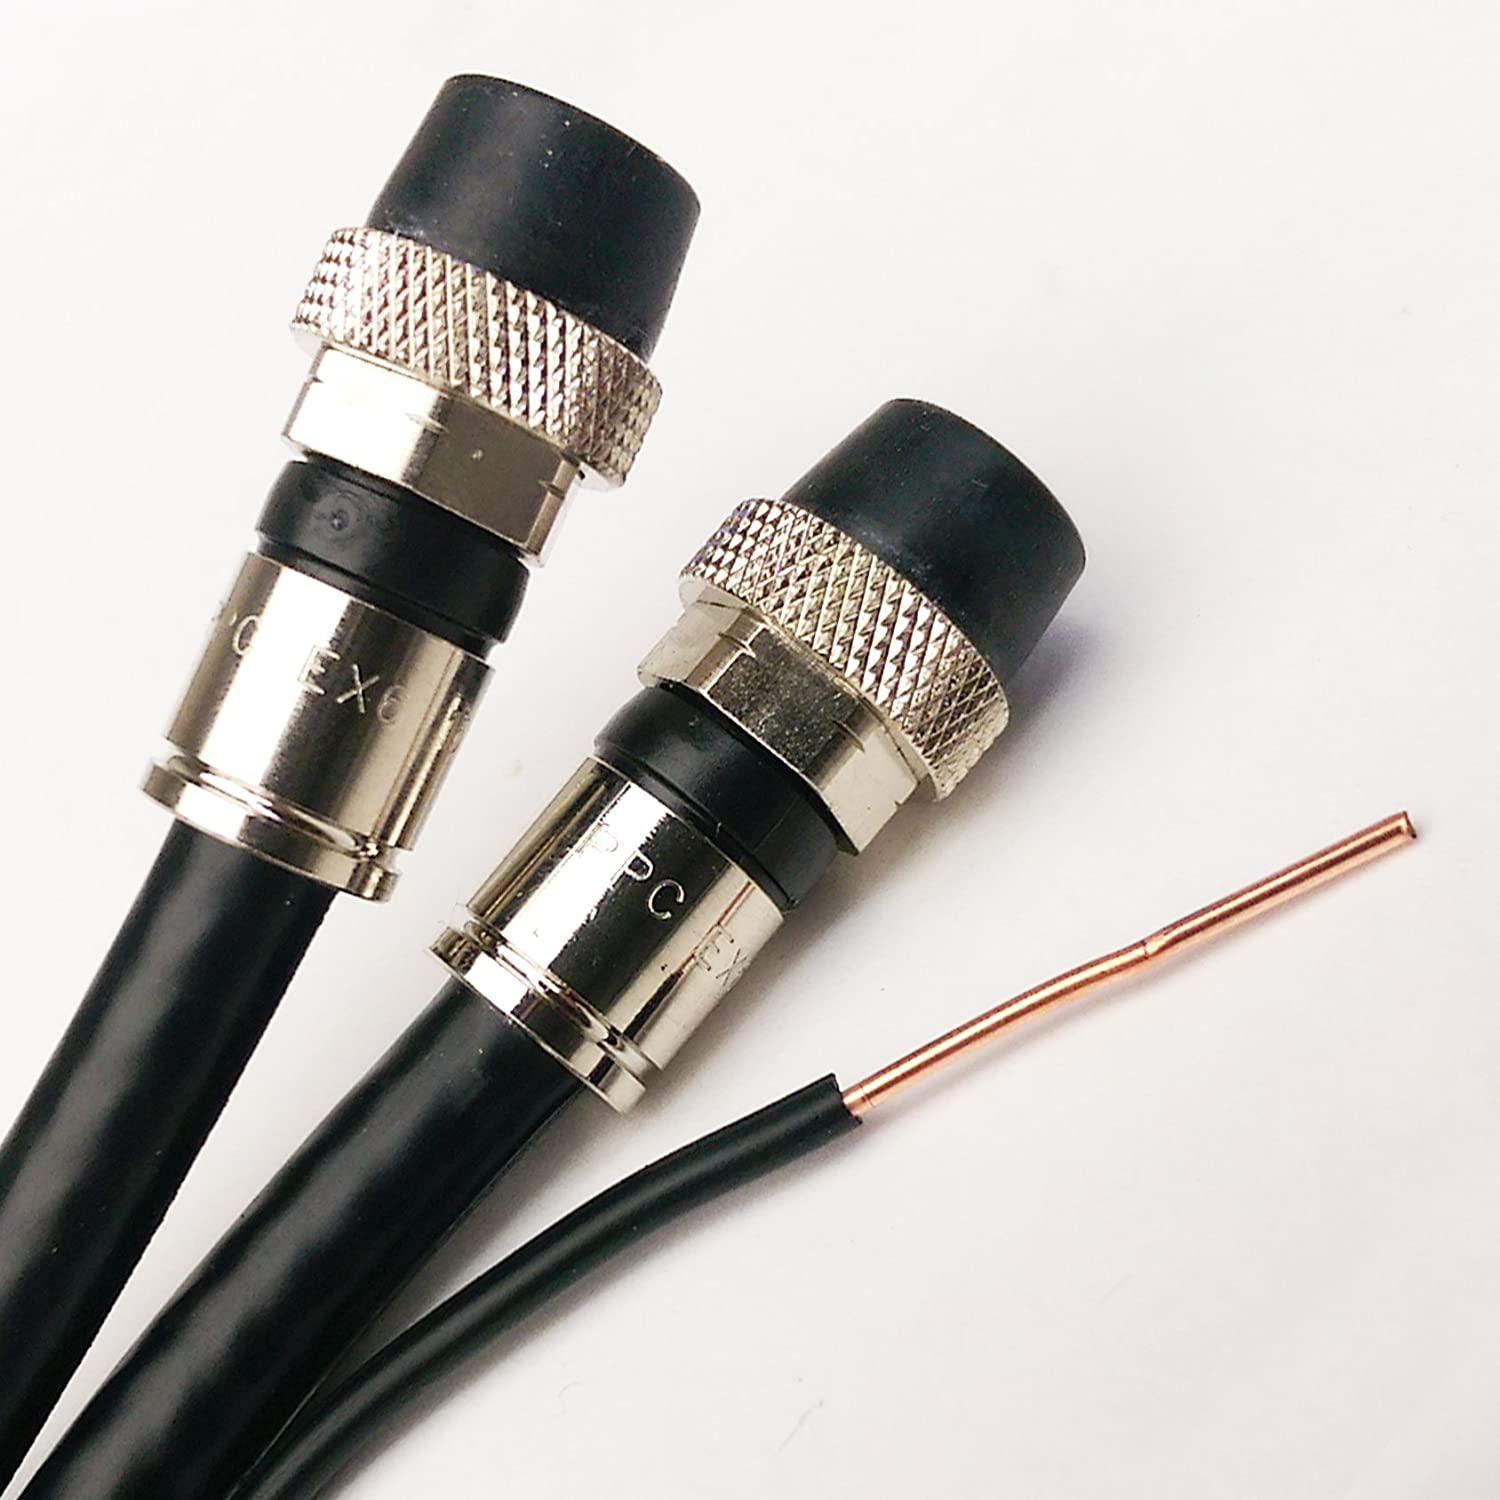 100ft Outdoor Dual RG-6 Coax Cable w//Ground Messenger 3Ghz 75 Ohm UL ETL cm Water Seal Compression Connectors w//Weather Boot Satellite TV /& Internet Cable Assembled in USA by PHAT SATELLITE INTL